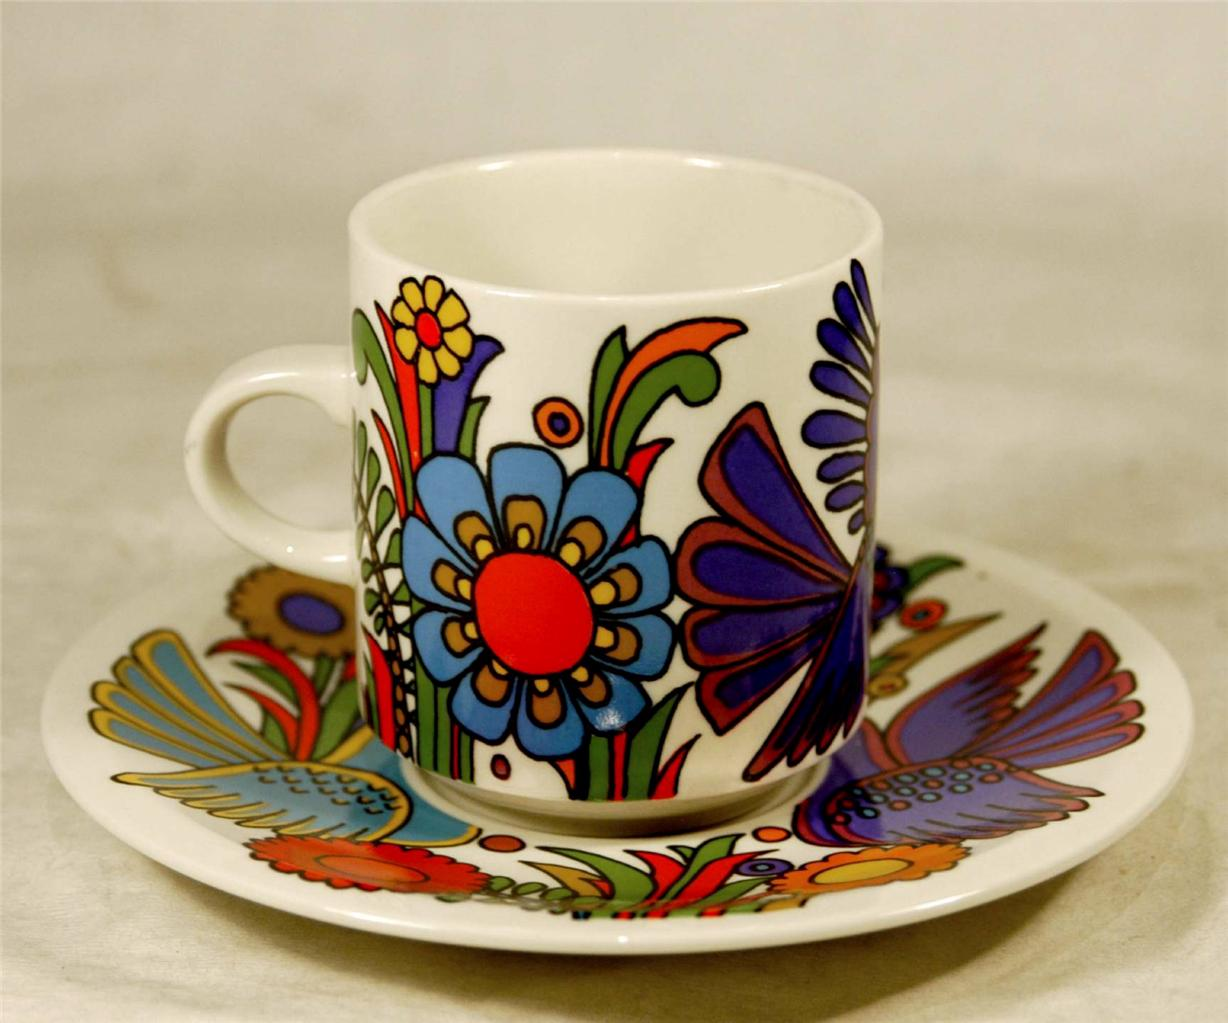 Vintage Villeroy And Boch Acapulco Coffee Mug Cup And